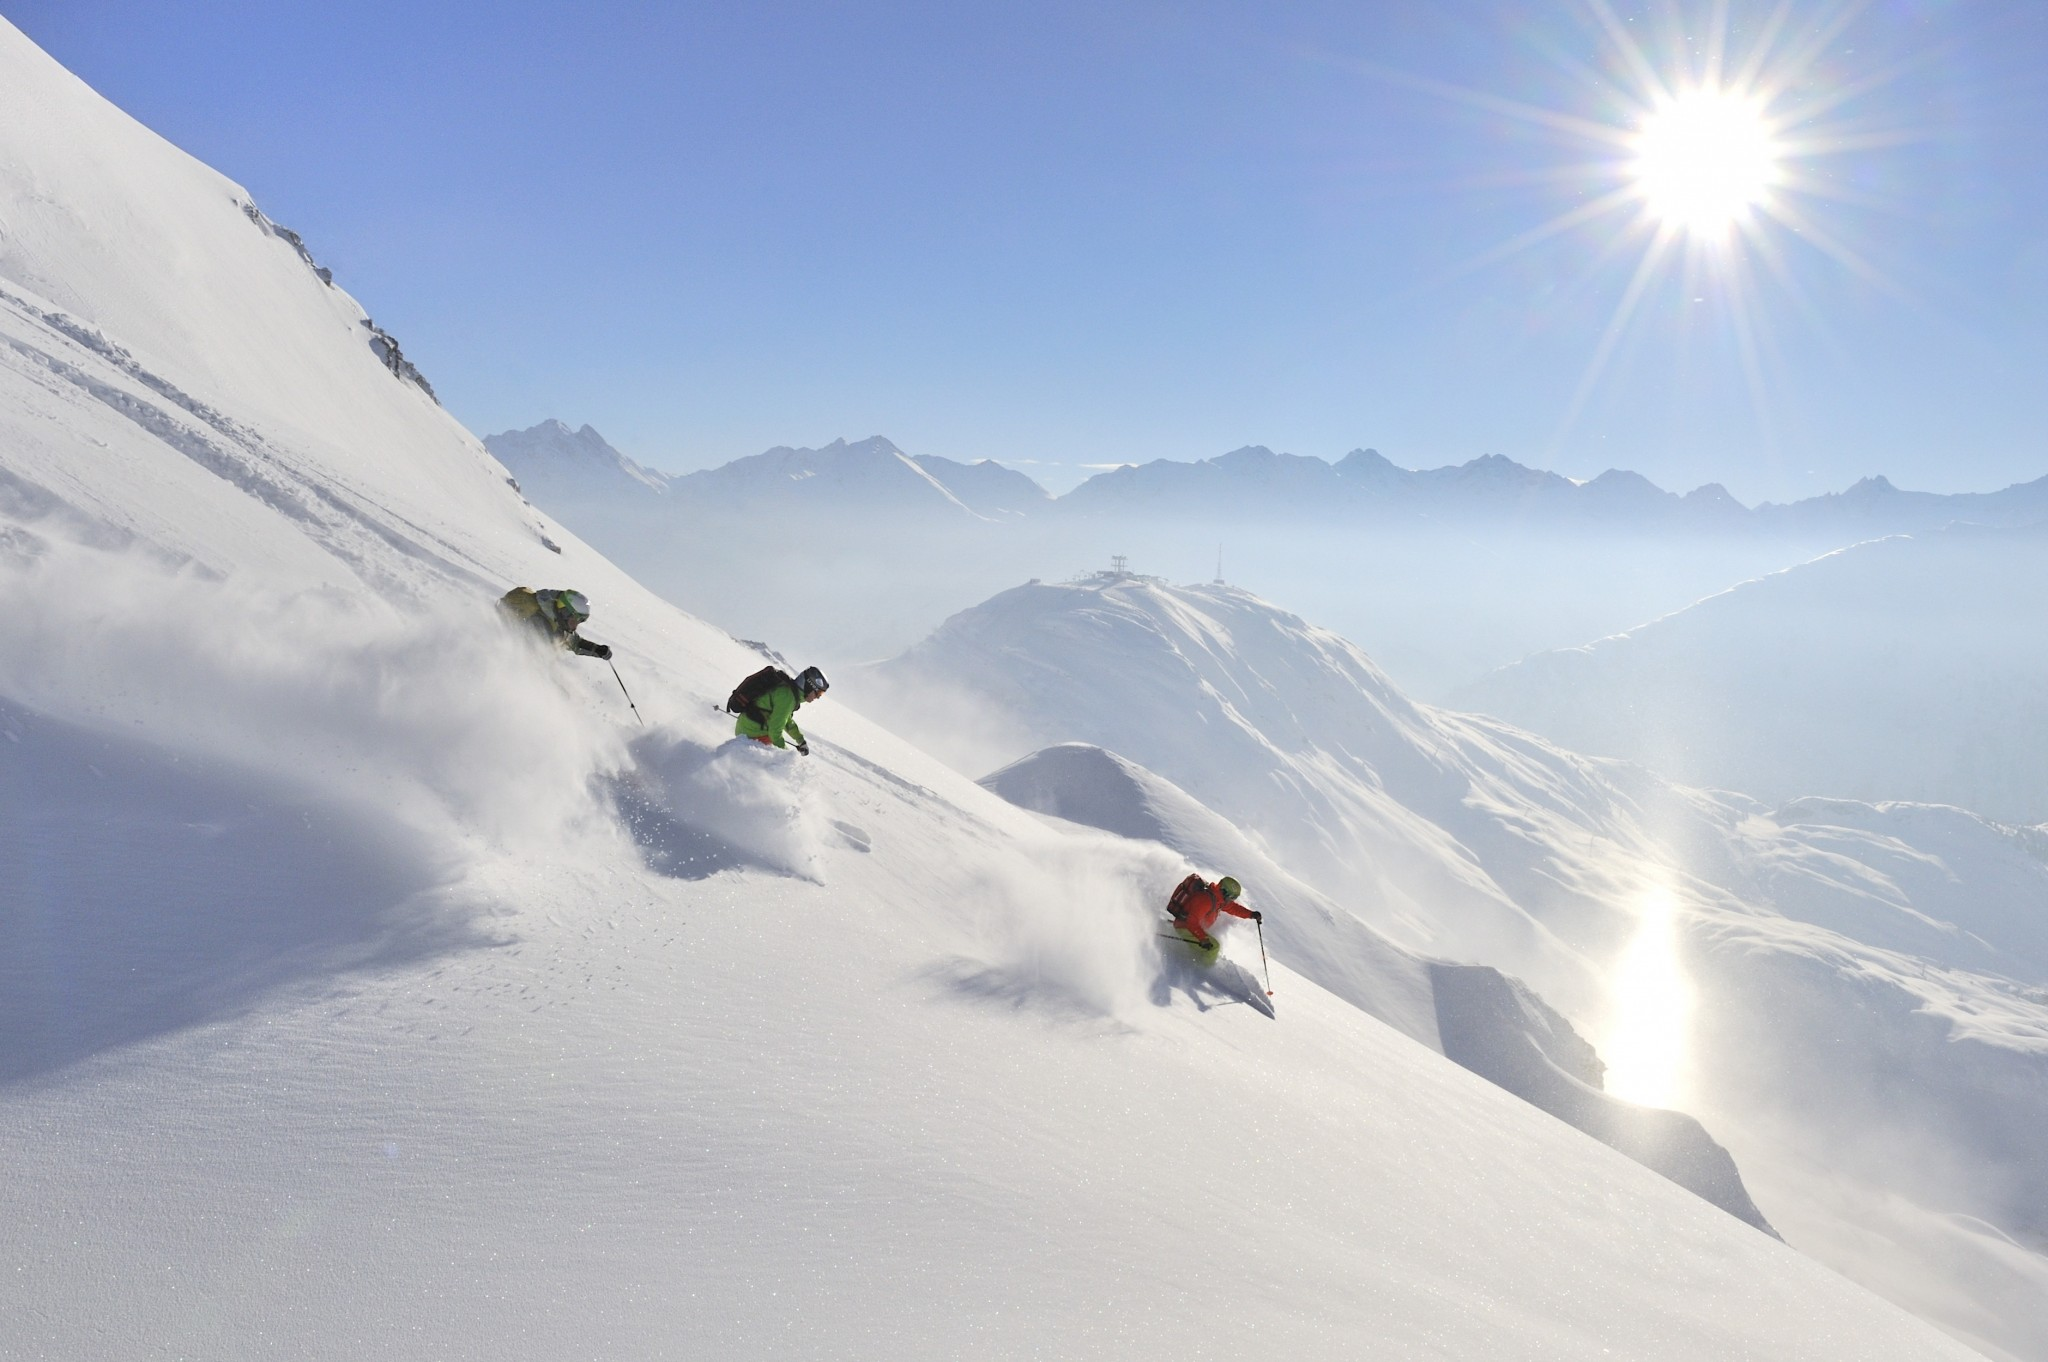 St Anton's Powder Snow Weeks CREDIT St Anton am Arlberg Tourist Board and Photographer Josef Mallaun